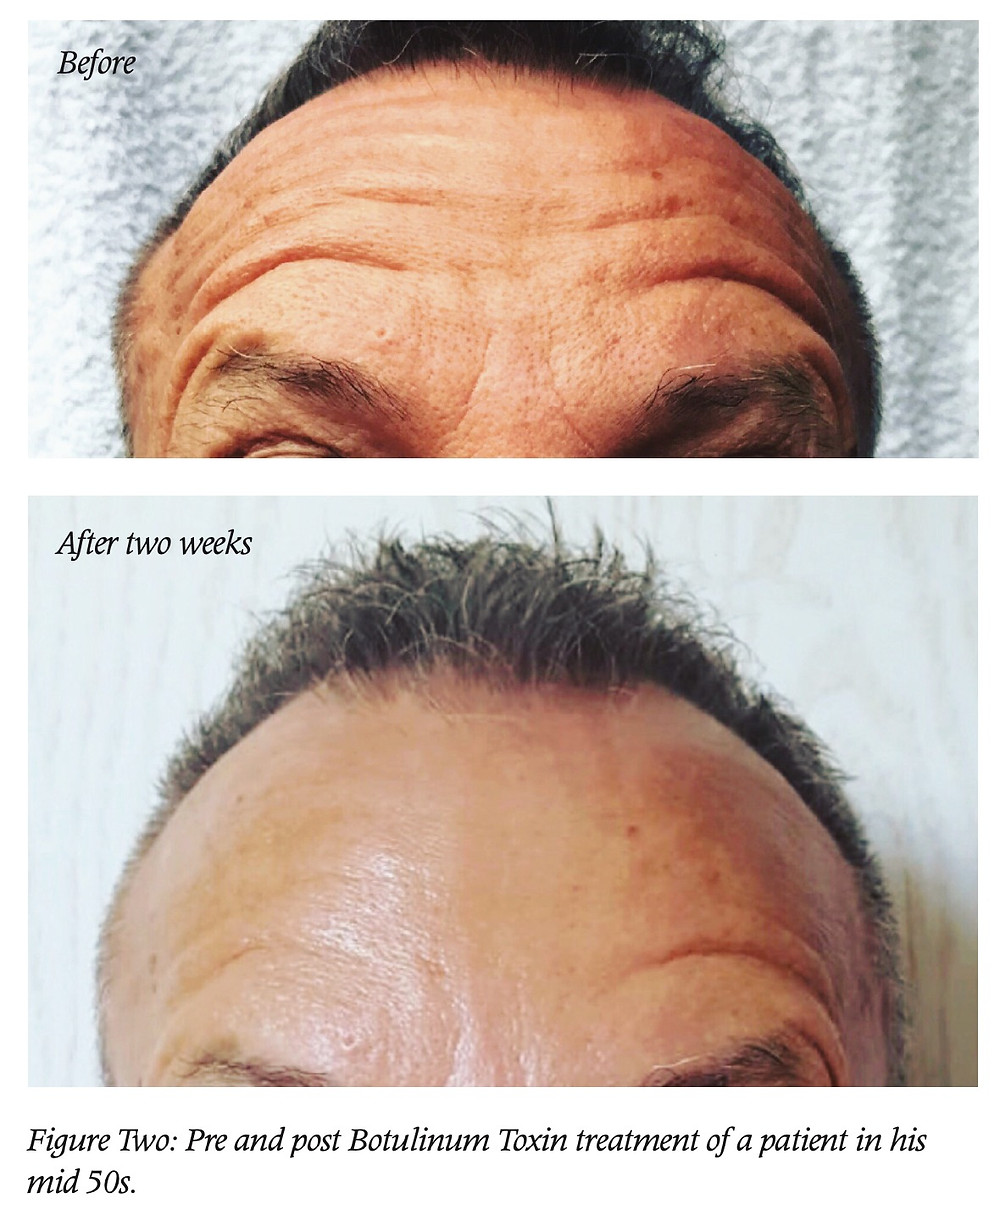 Pre and post Botulinum Toxin treatment on a patient in his mid 50s. Both pictures taken with patient raising his eyebrows